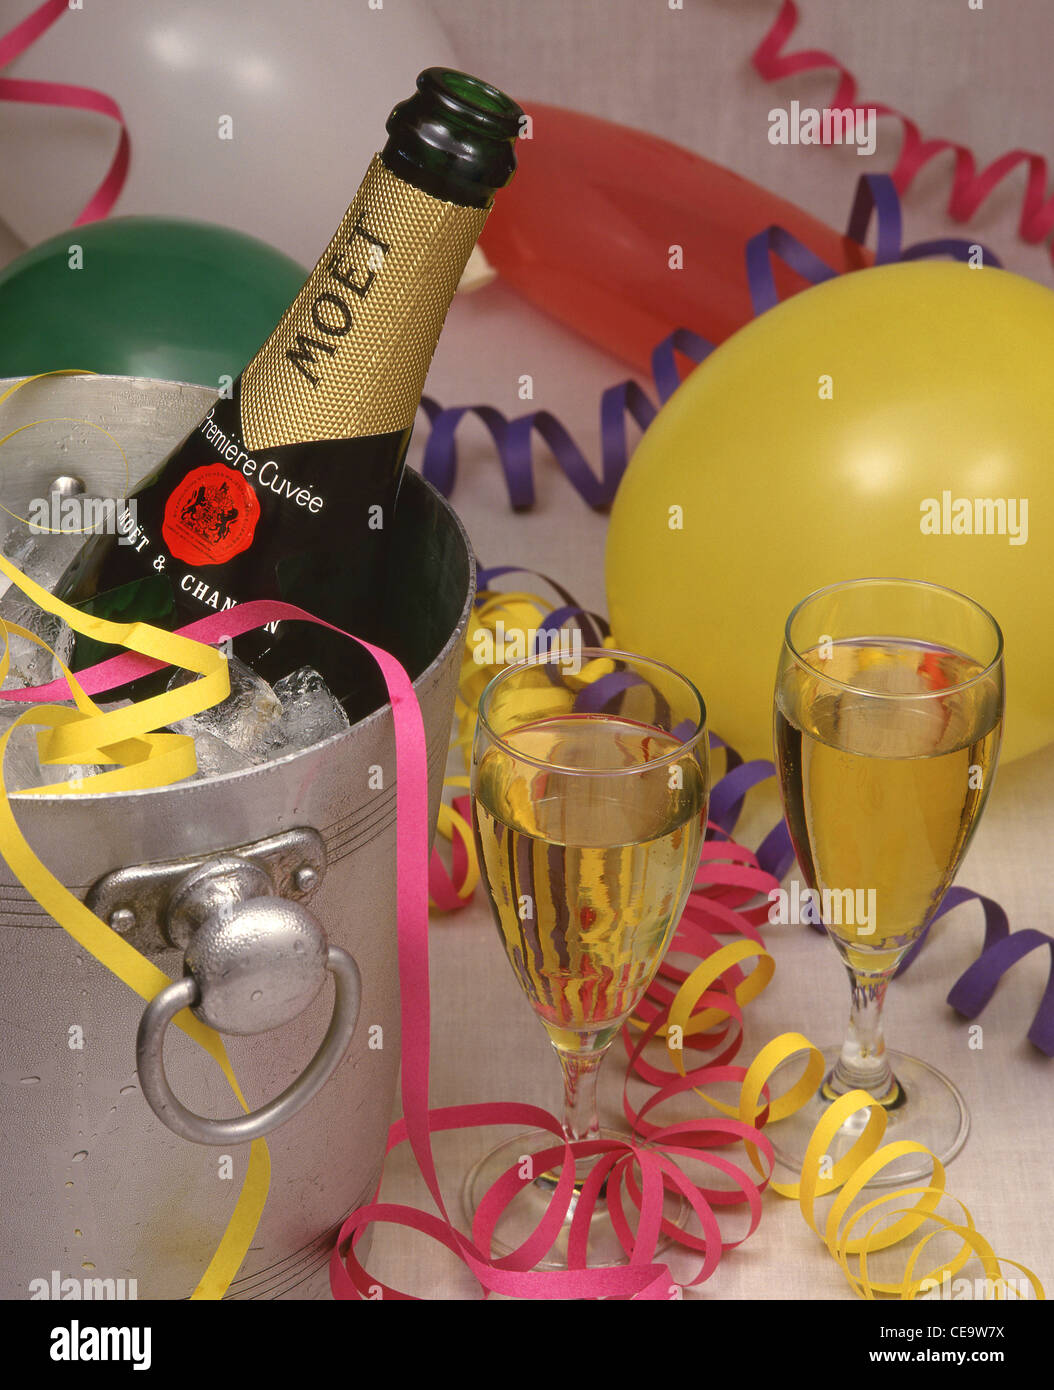 Moët champagne in bucket with streamers and balloons, London, England, United Kingdom - Stock Image